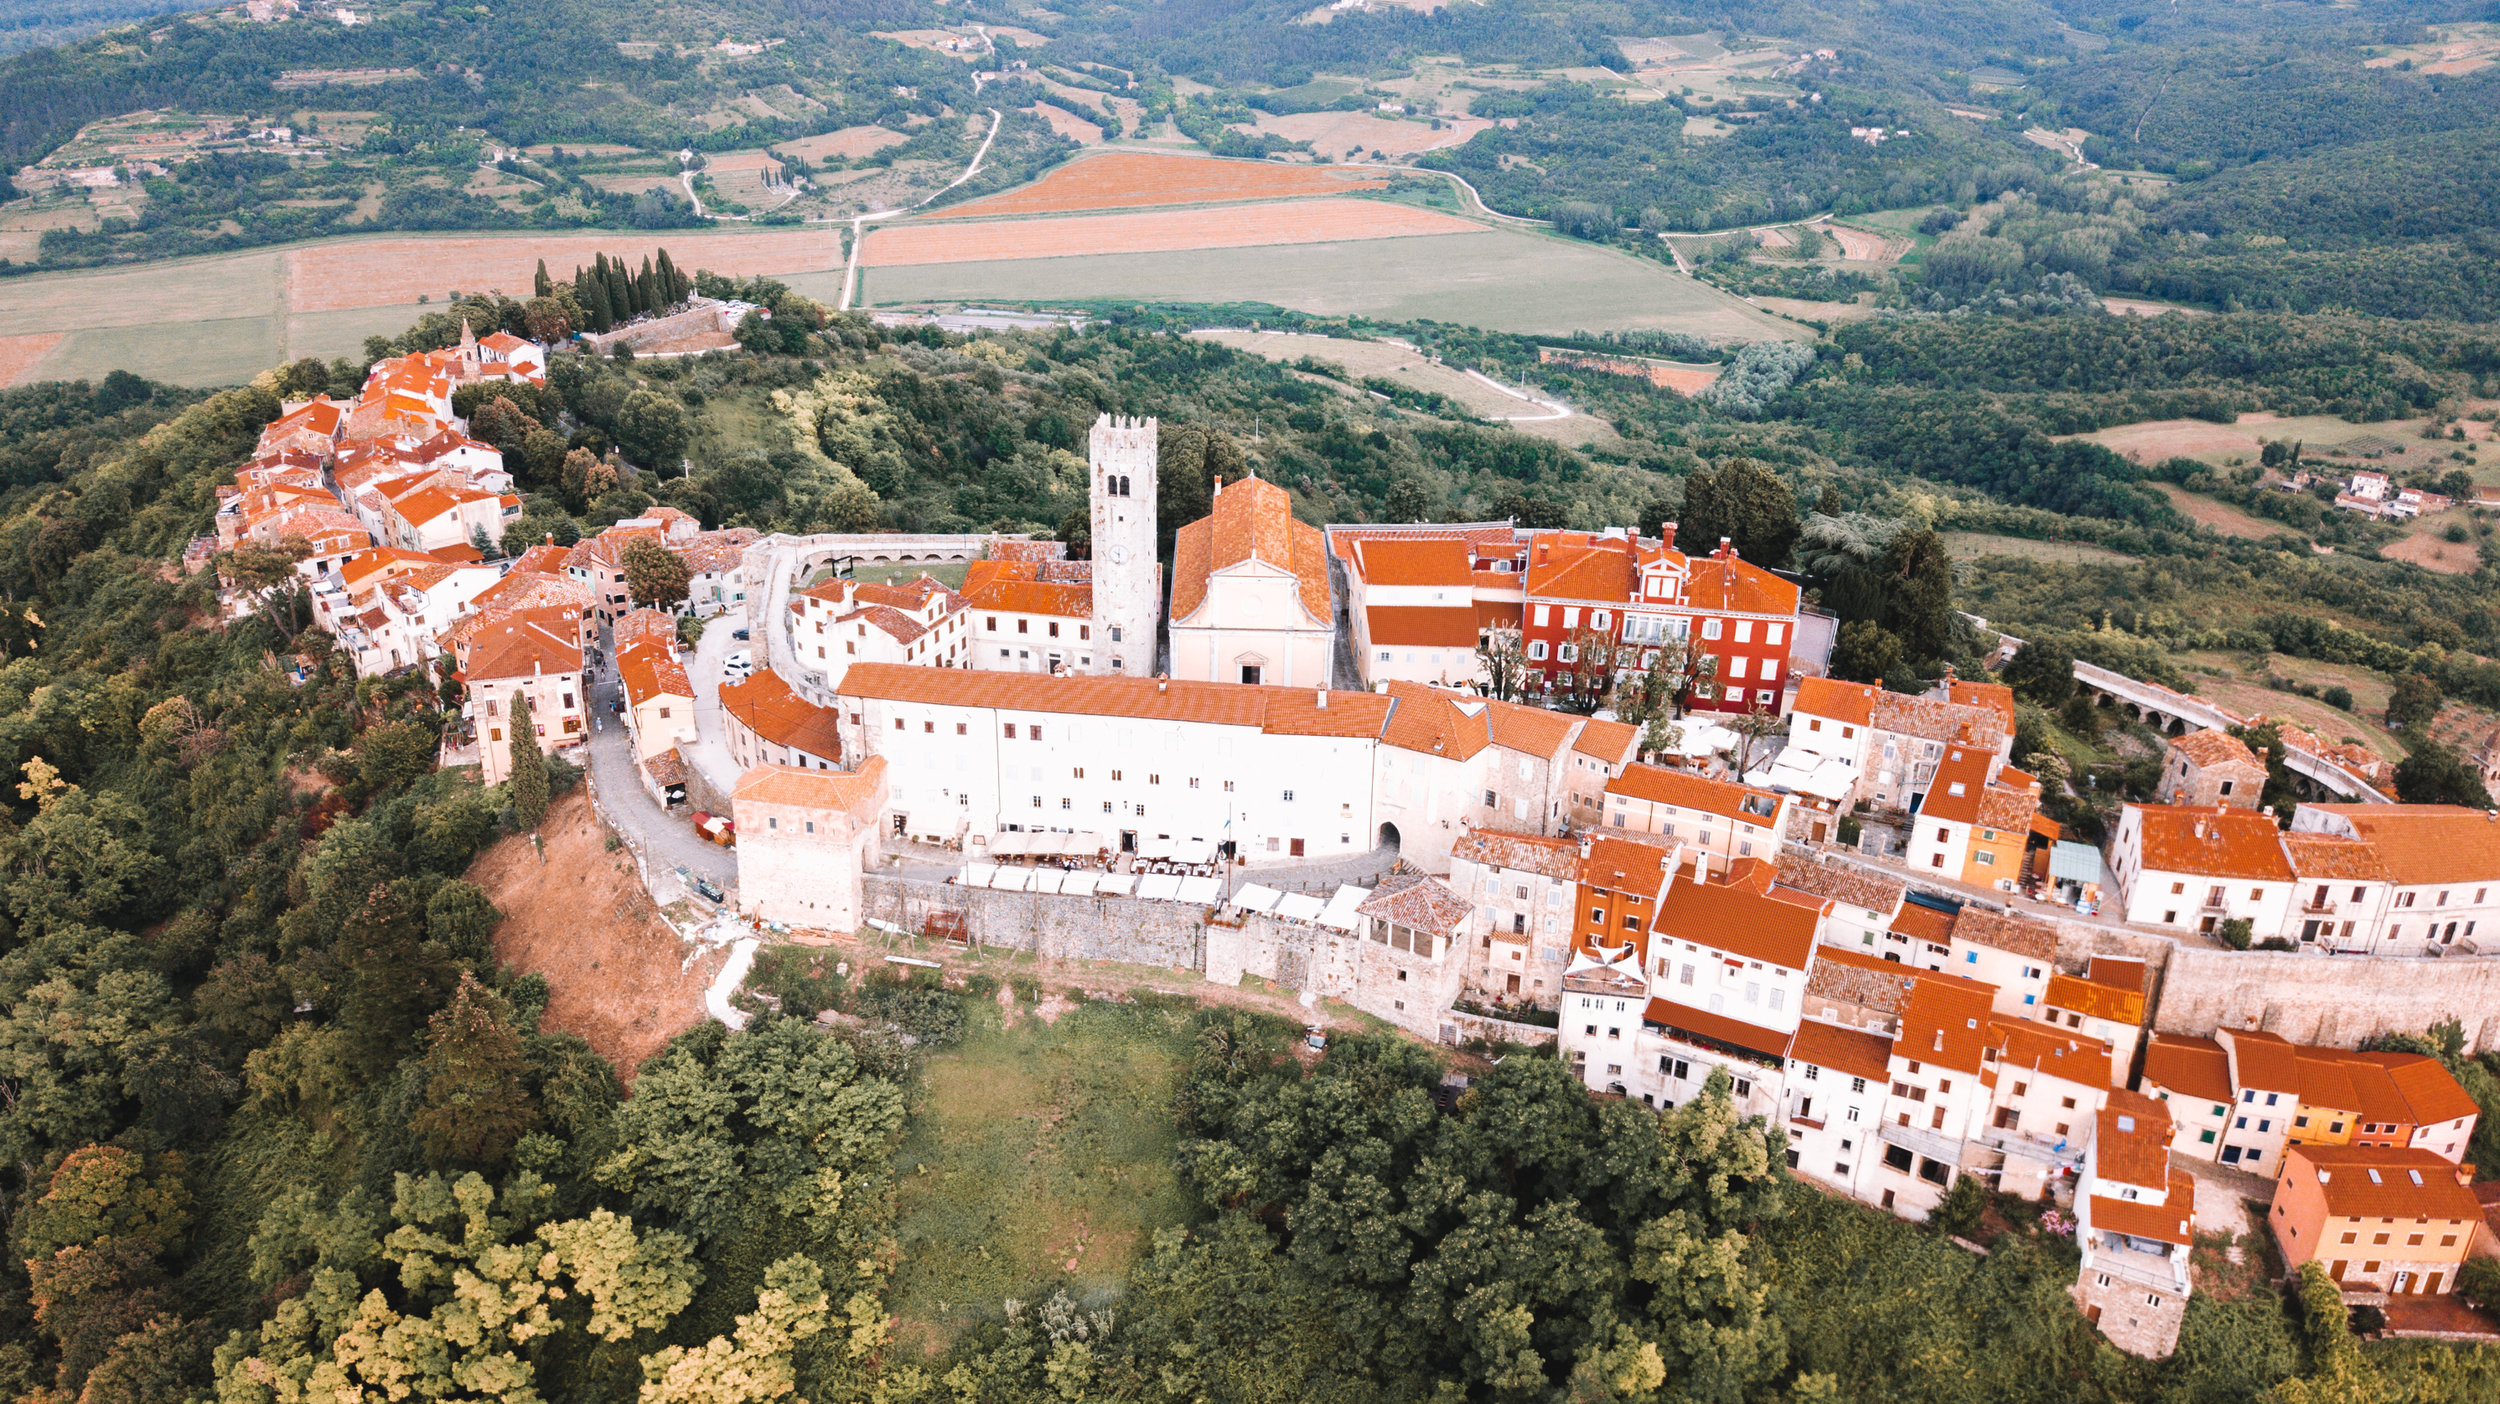 Aerial view of Motovun, birthplace of Mario Andretti